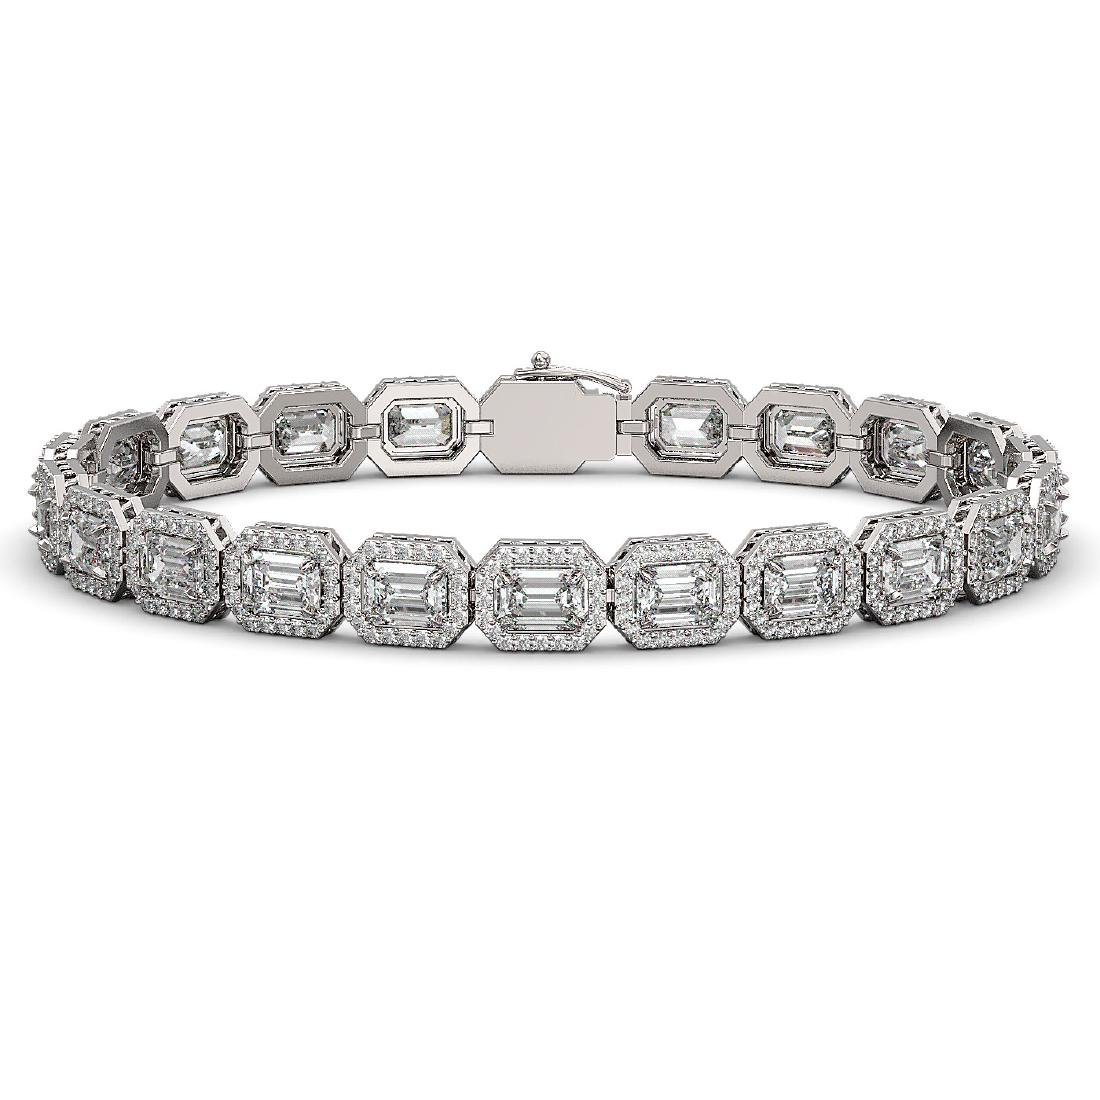 16.72 CTW Emerald Cut Diamond Designer Bracelet 18K